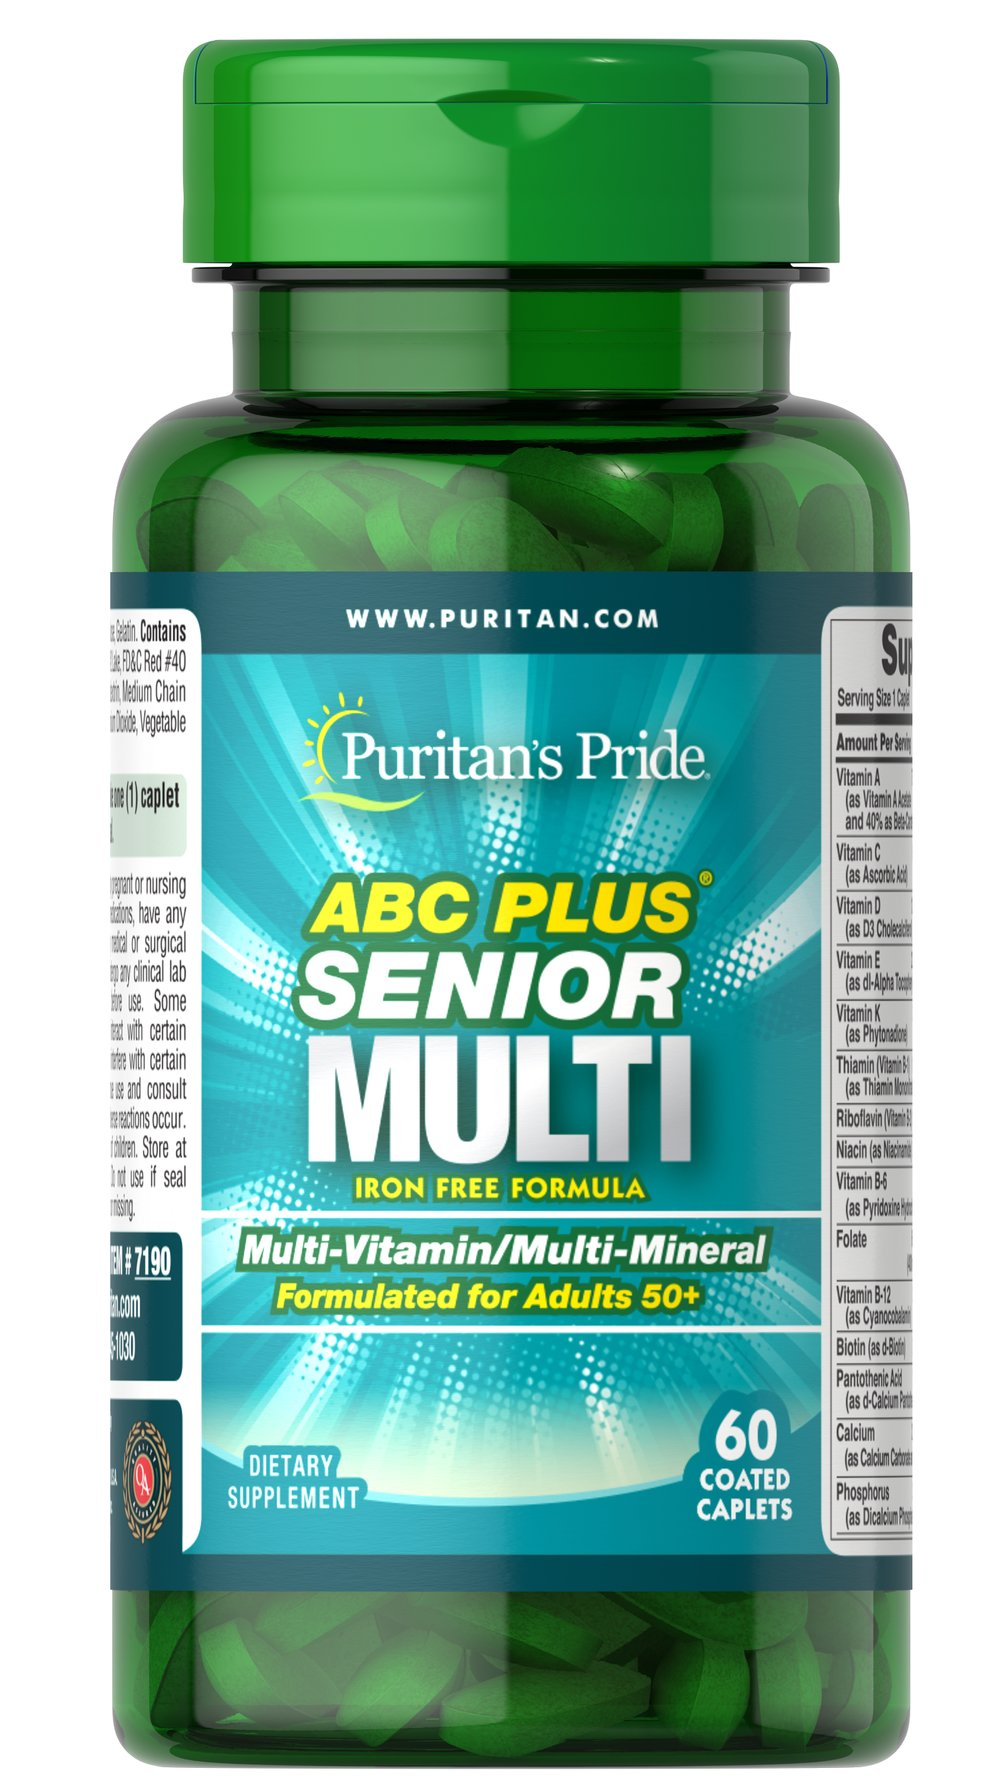 ABC Plus® Senior Multivitamin Multi-Mineral Formula  60 Caplets  $6.99